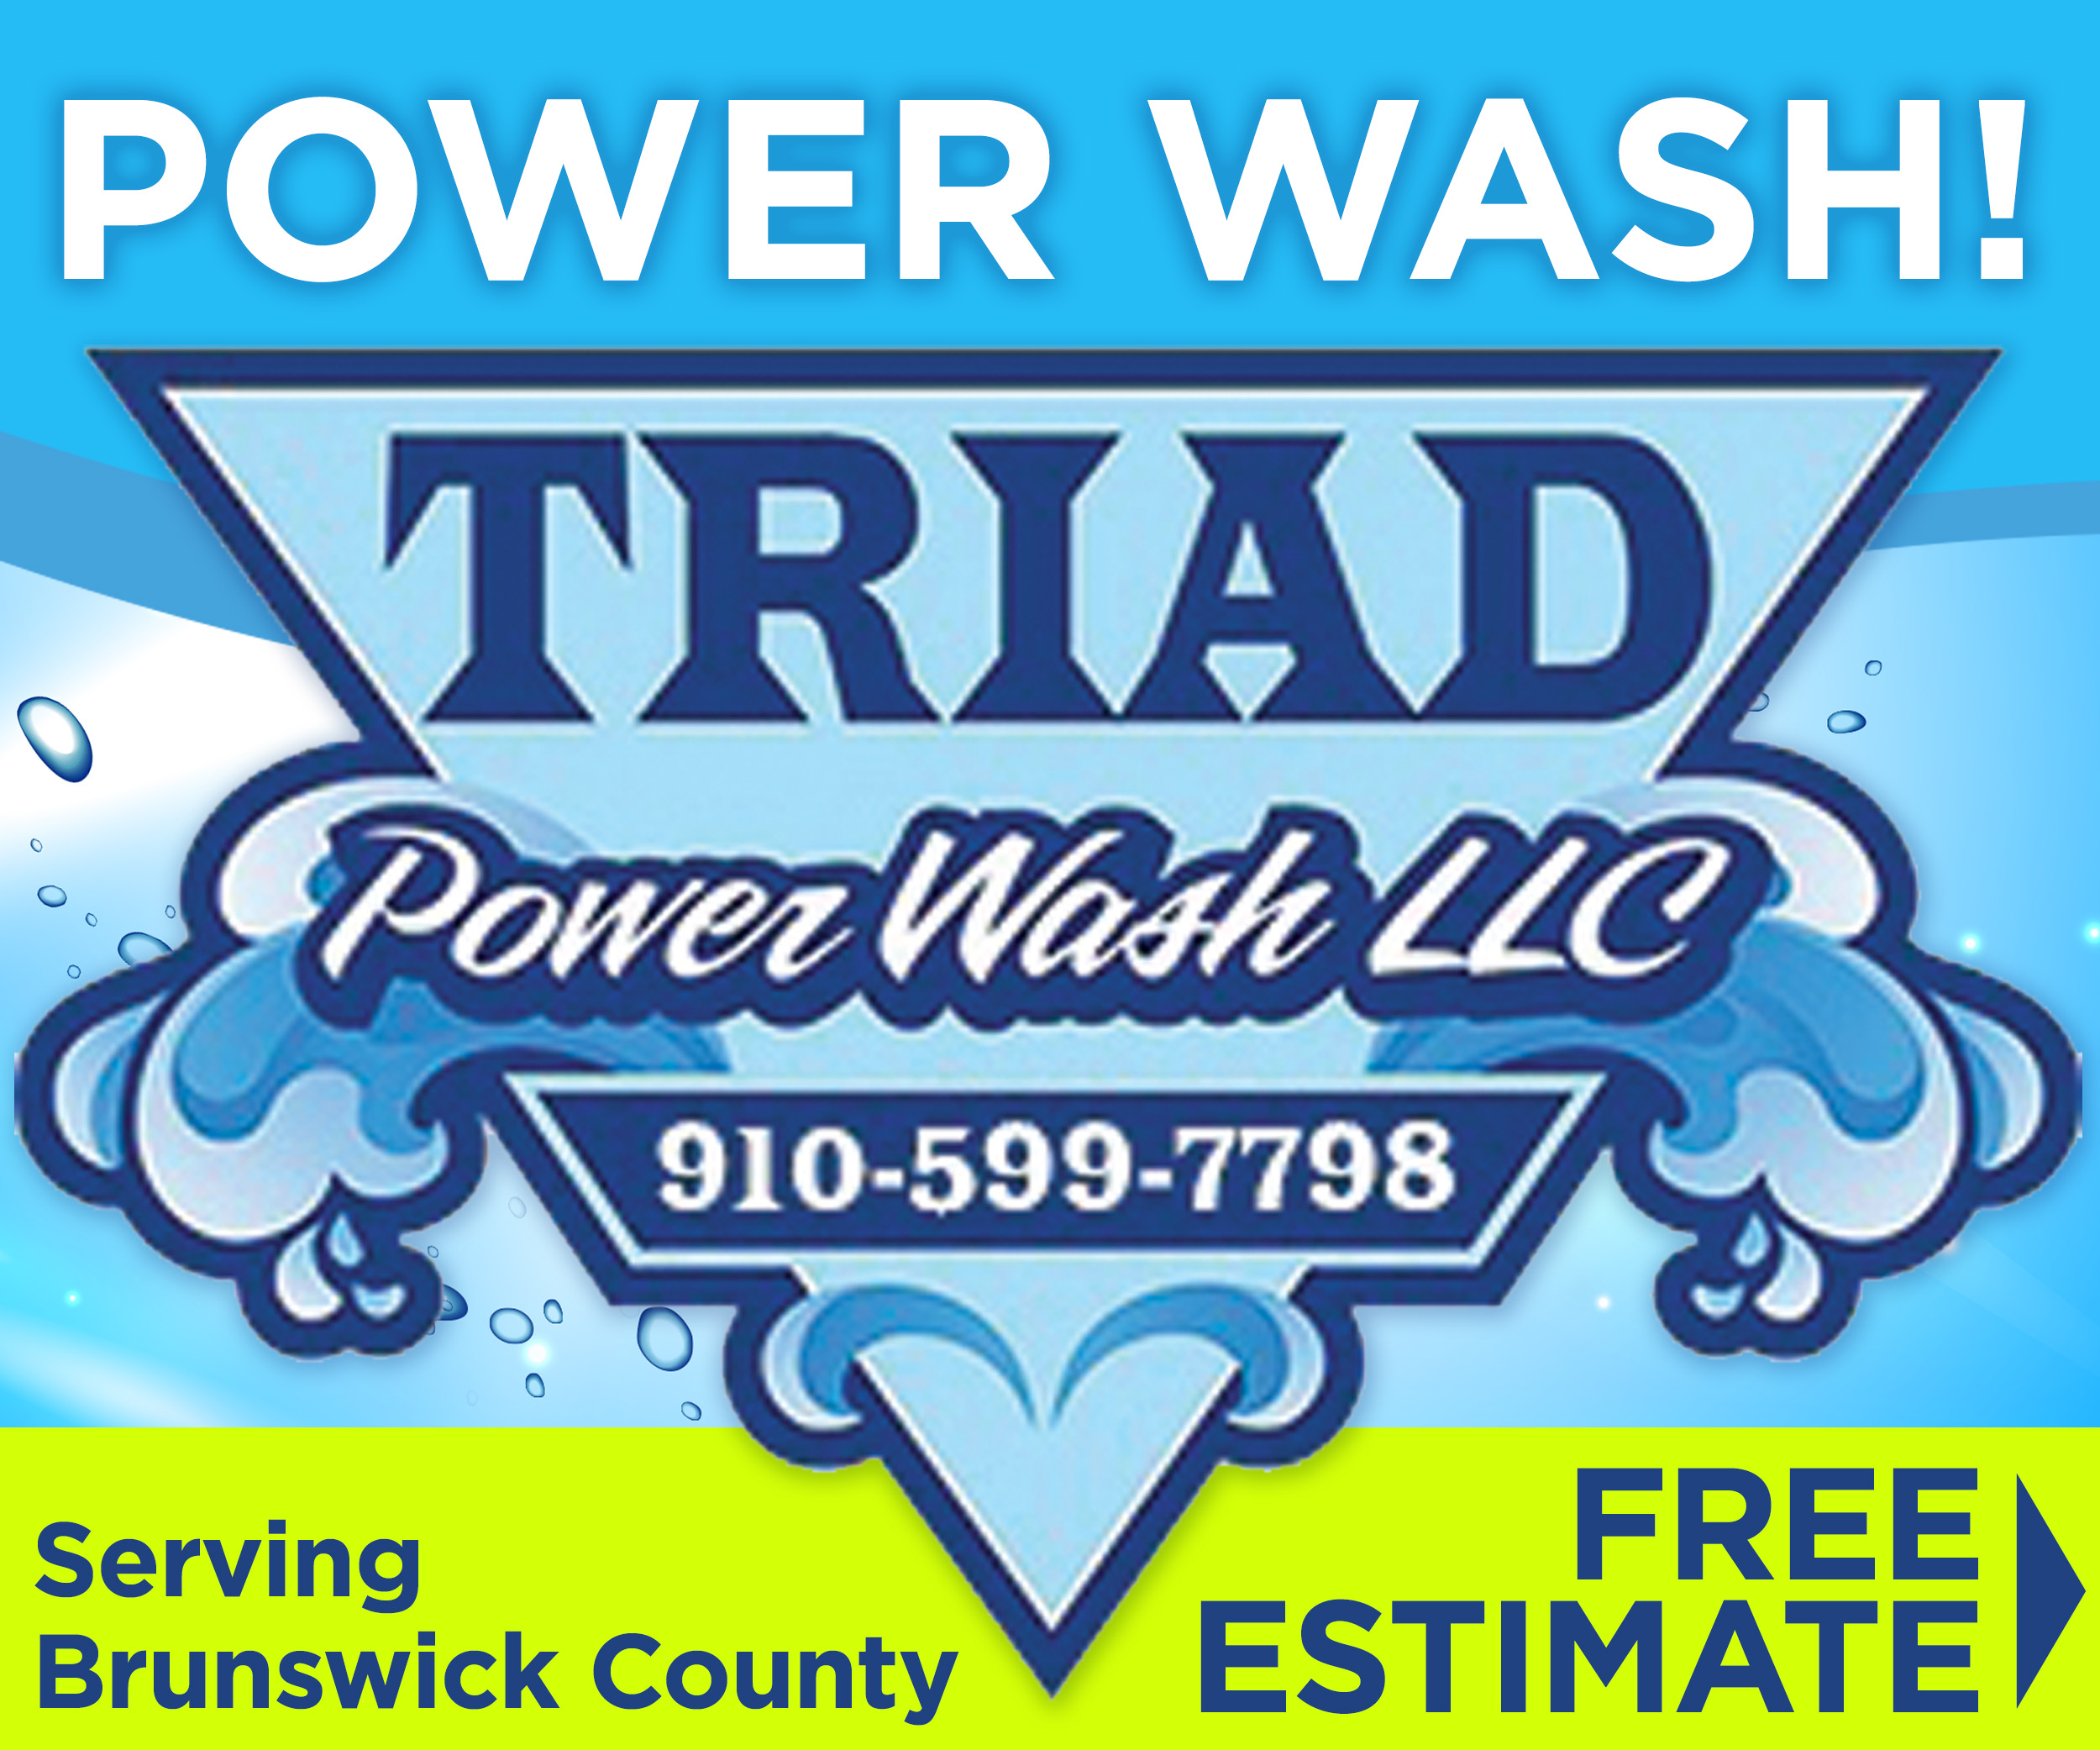 Sponsored by Triad Power Wash